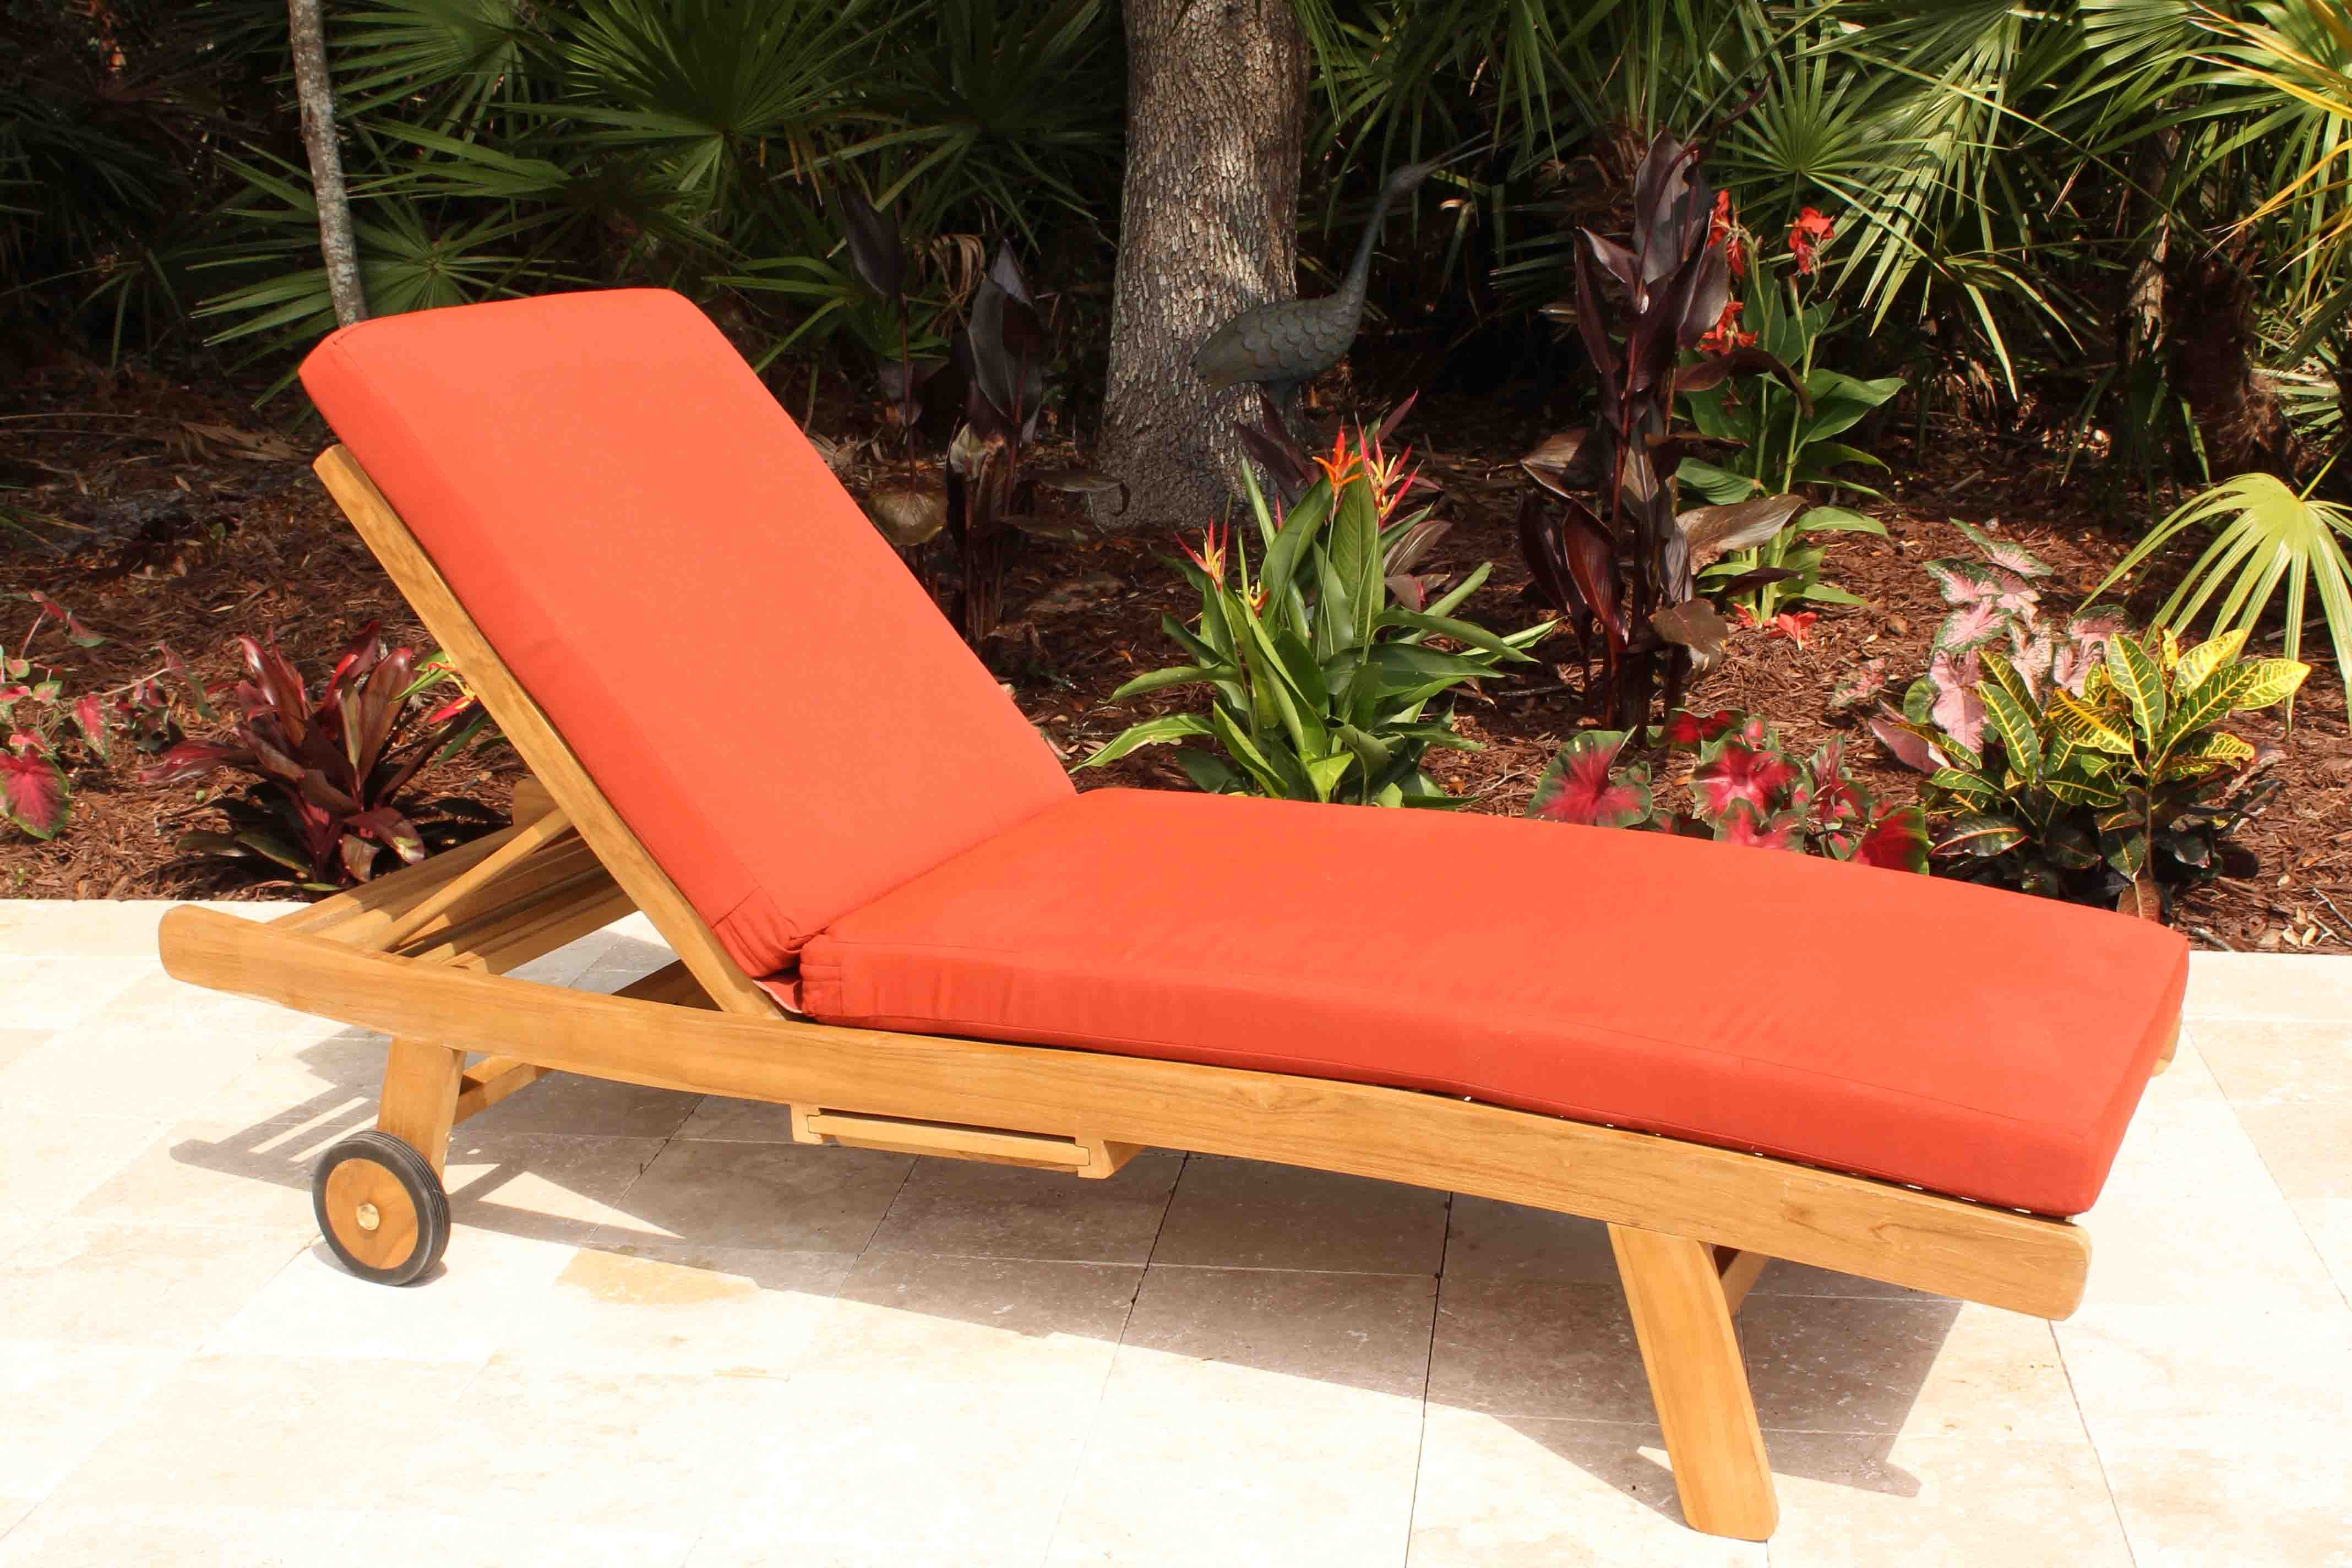 Popular Teak Chaise Lounge Cushions In Sale Sunbrella Fabric Chaise Lounge Cushion (View 8 of 15)